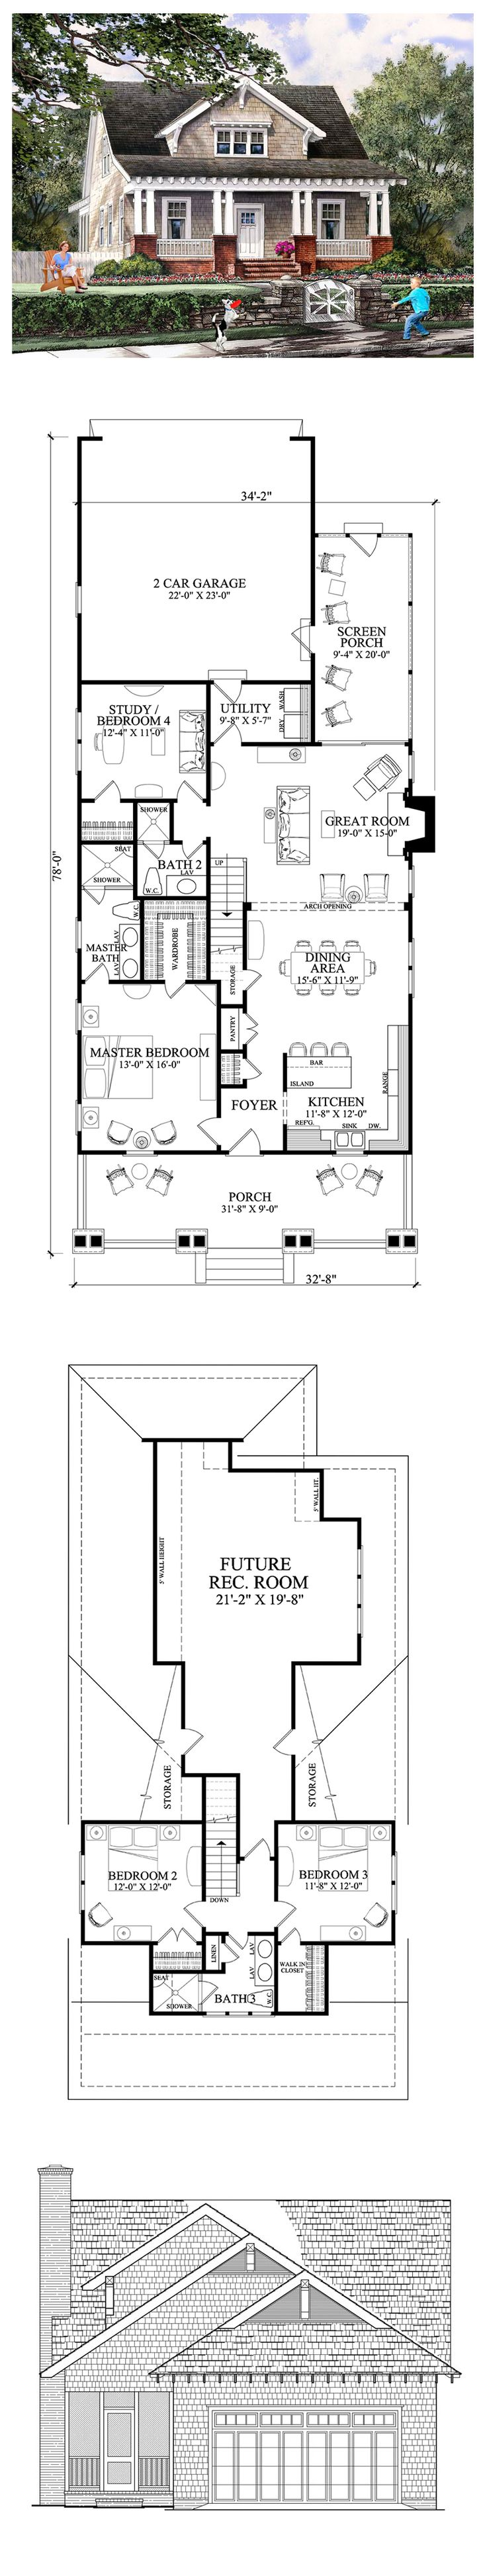 Bungalow House Plan 86121 | Total Living Area: 1907 sq. ft., 4